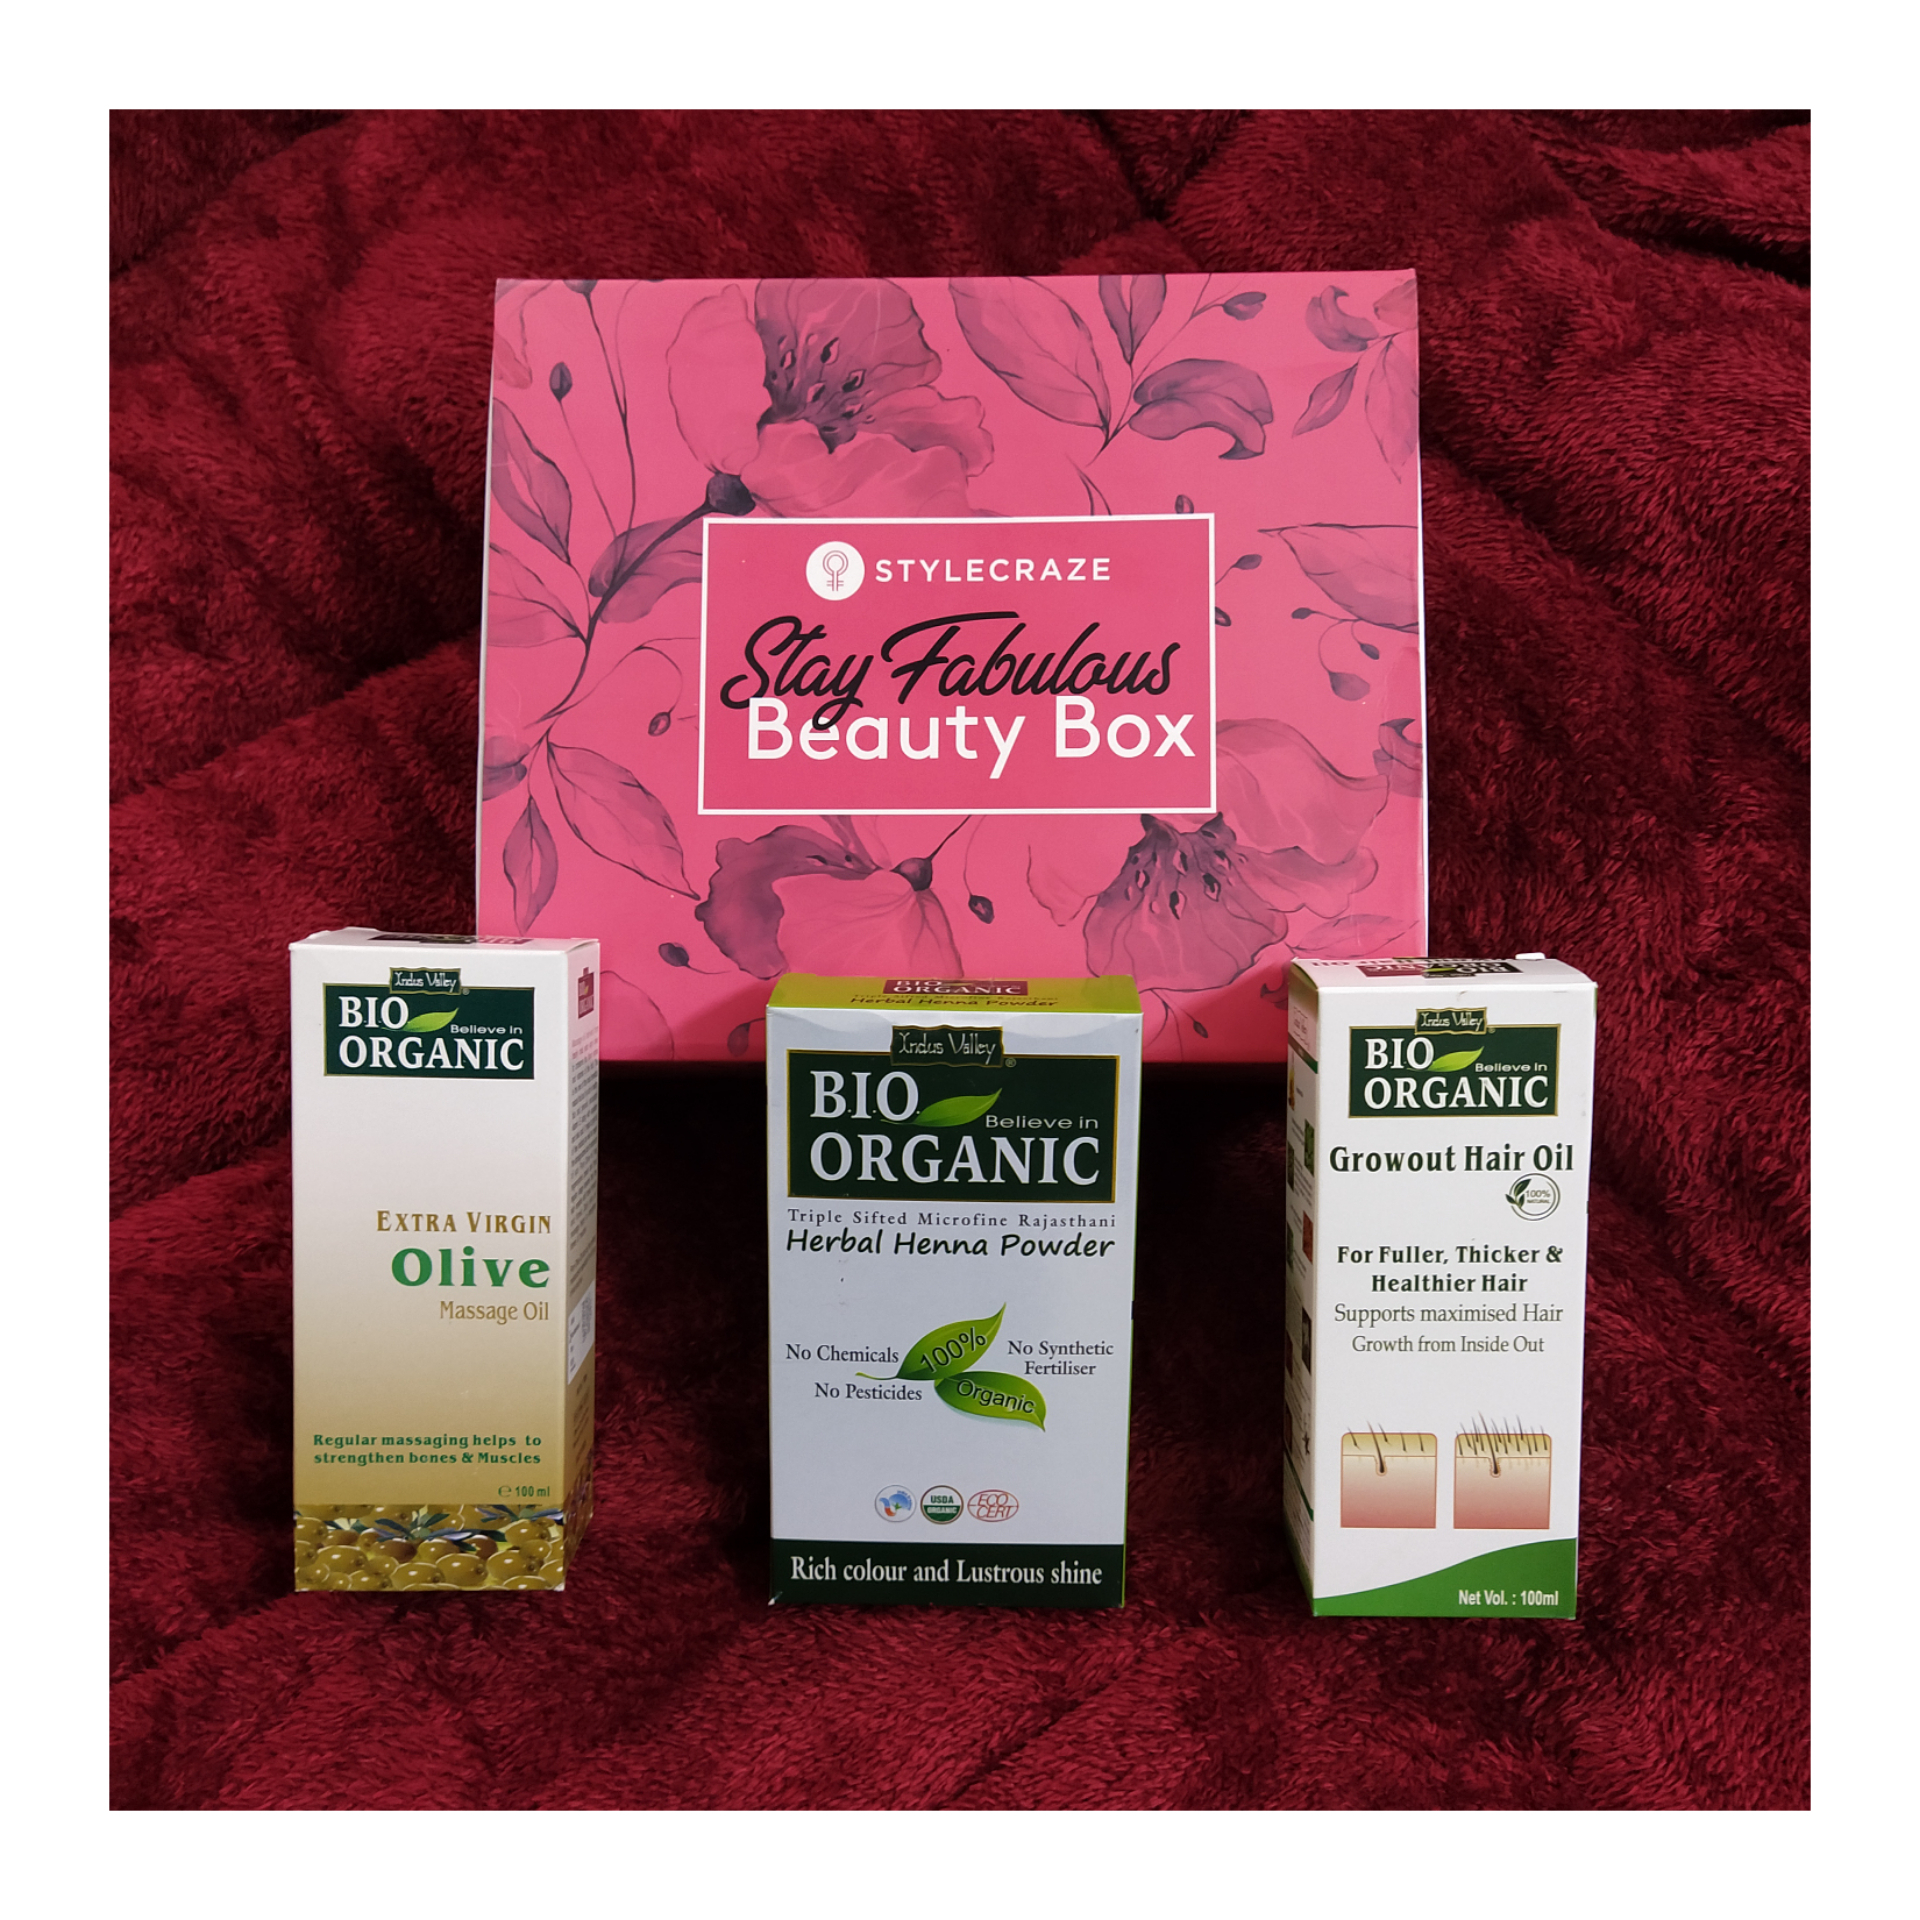 Indus Valley Bio Organic Extra Virgin Olive Massage Oil-Goodness of Olives-By bhumikanlittlem